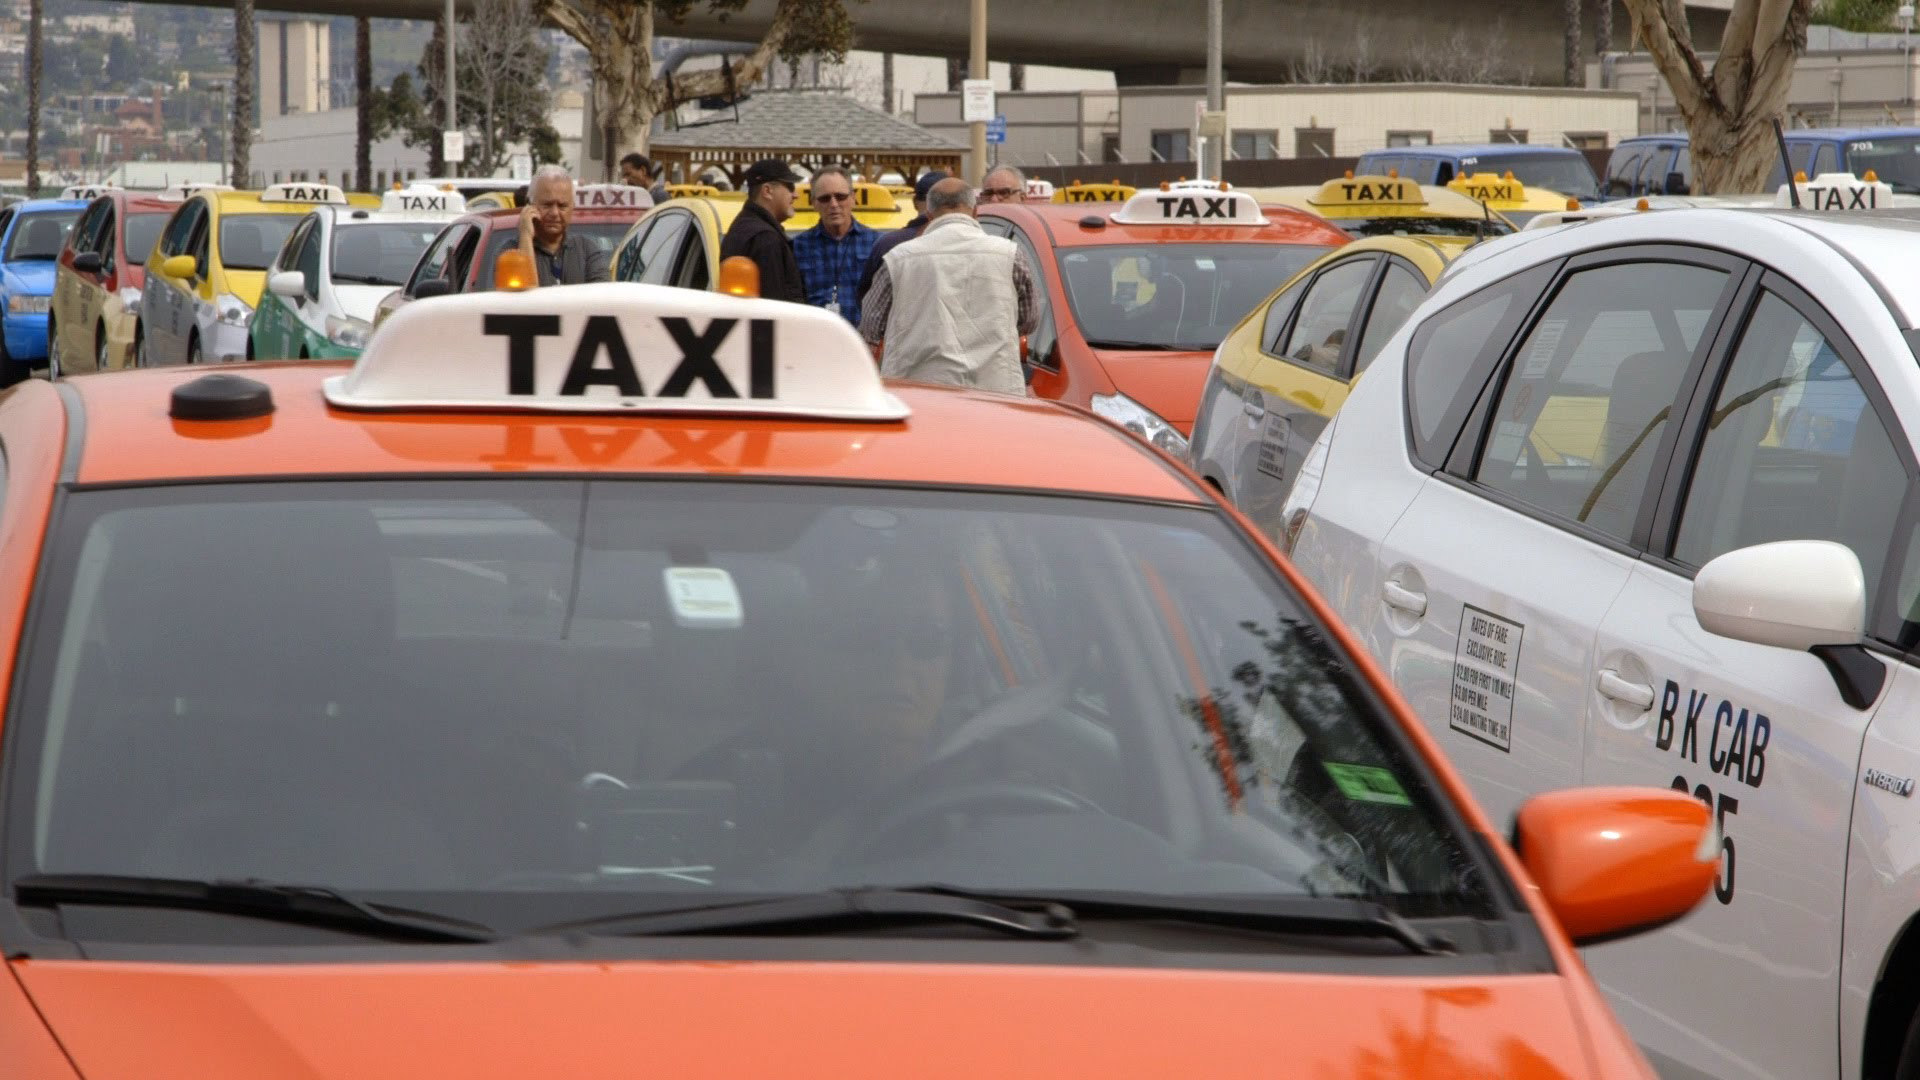 New Push to Cut Airport Taxi Pollution